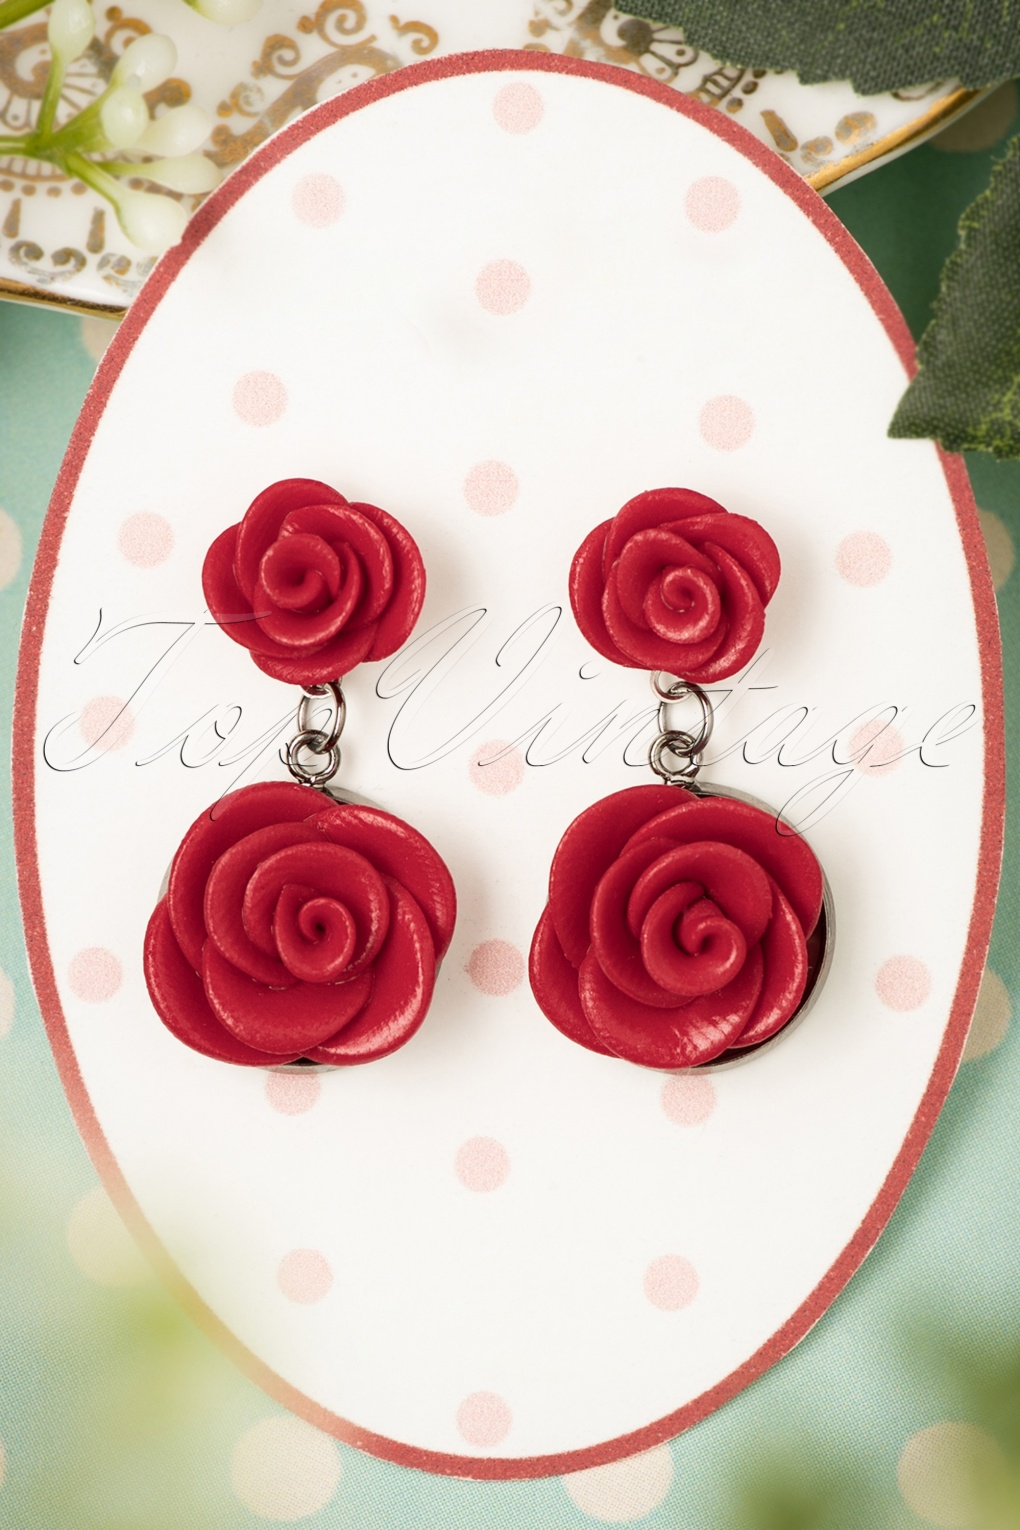 Vintage Style Jewelry, Retro Jewelry 40s Romantic Red Roses Earrings £13.12 AT vintagedancer.com